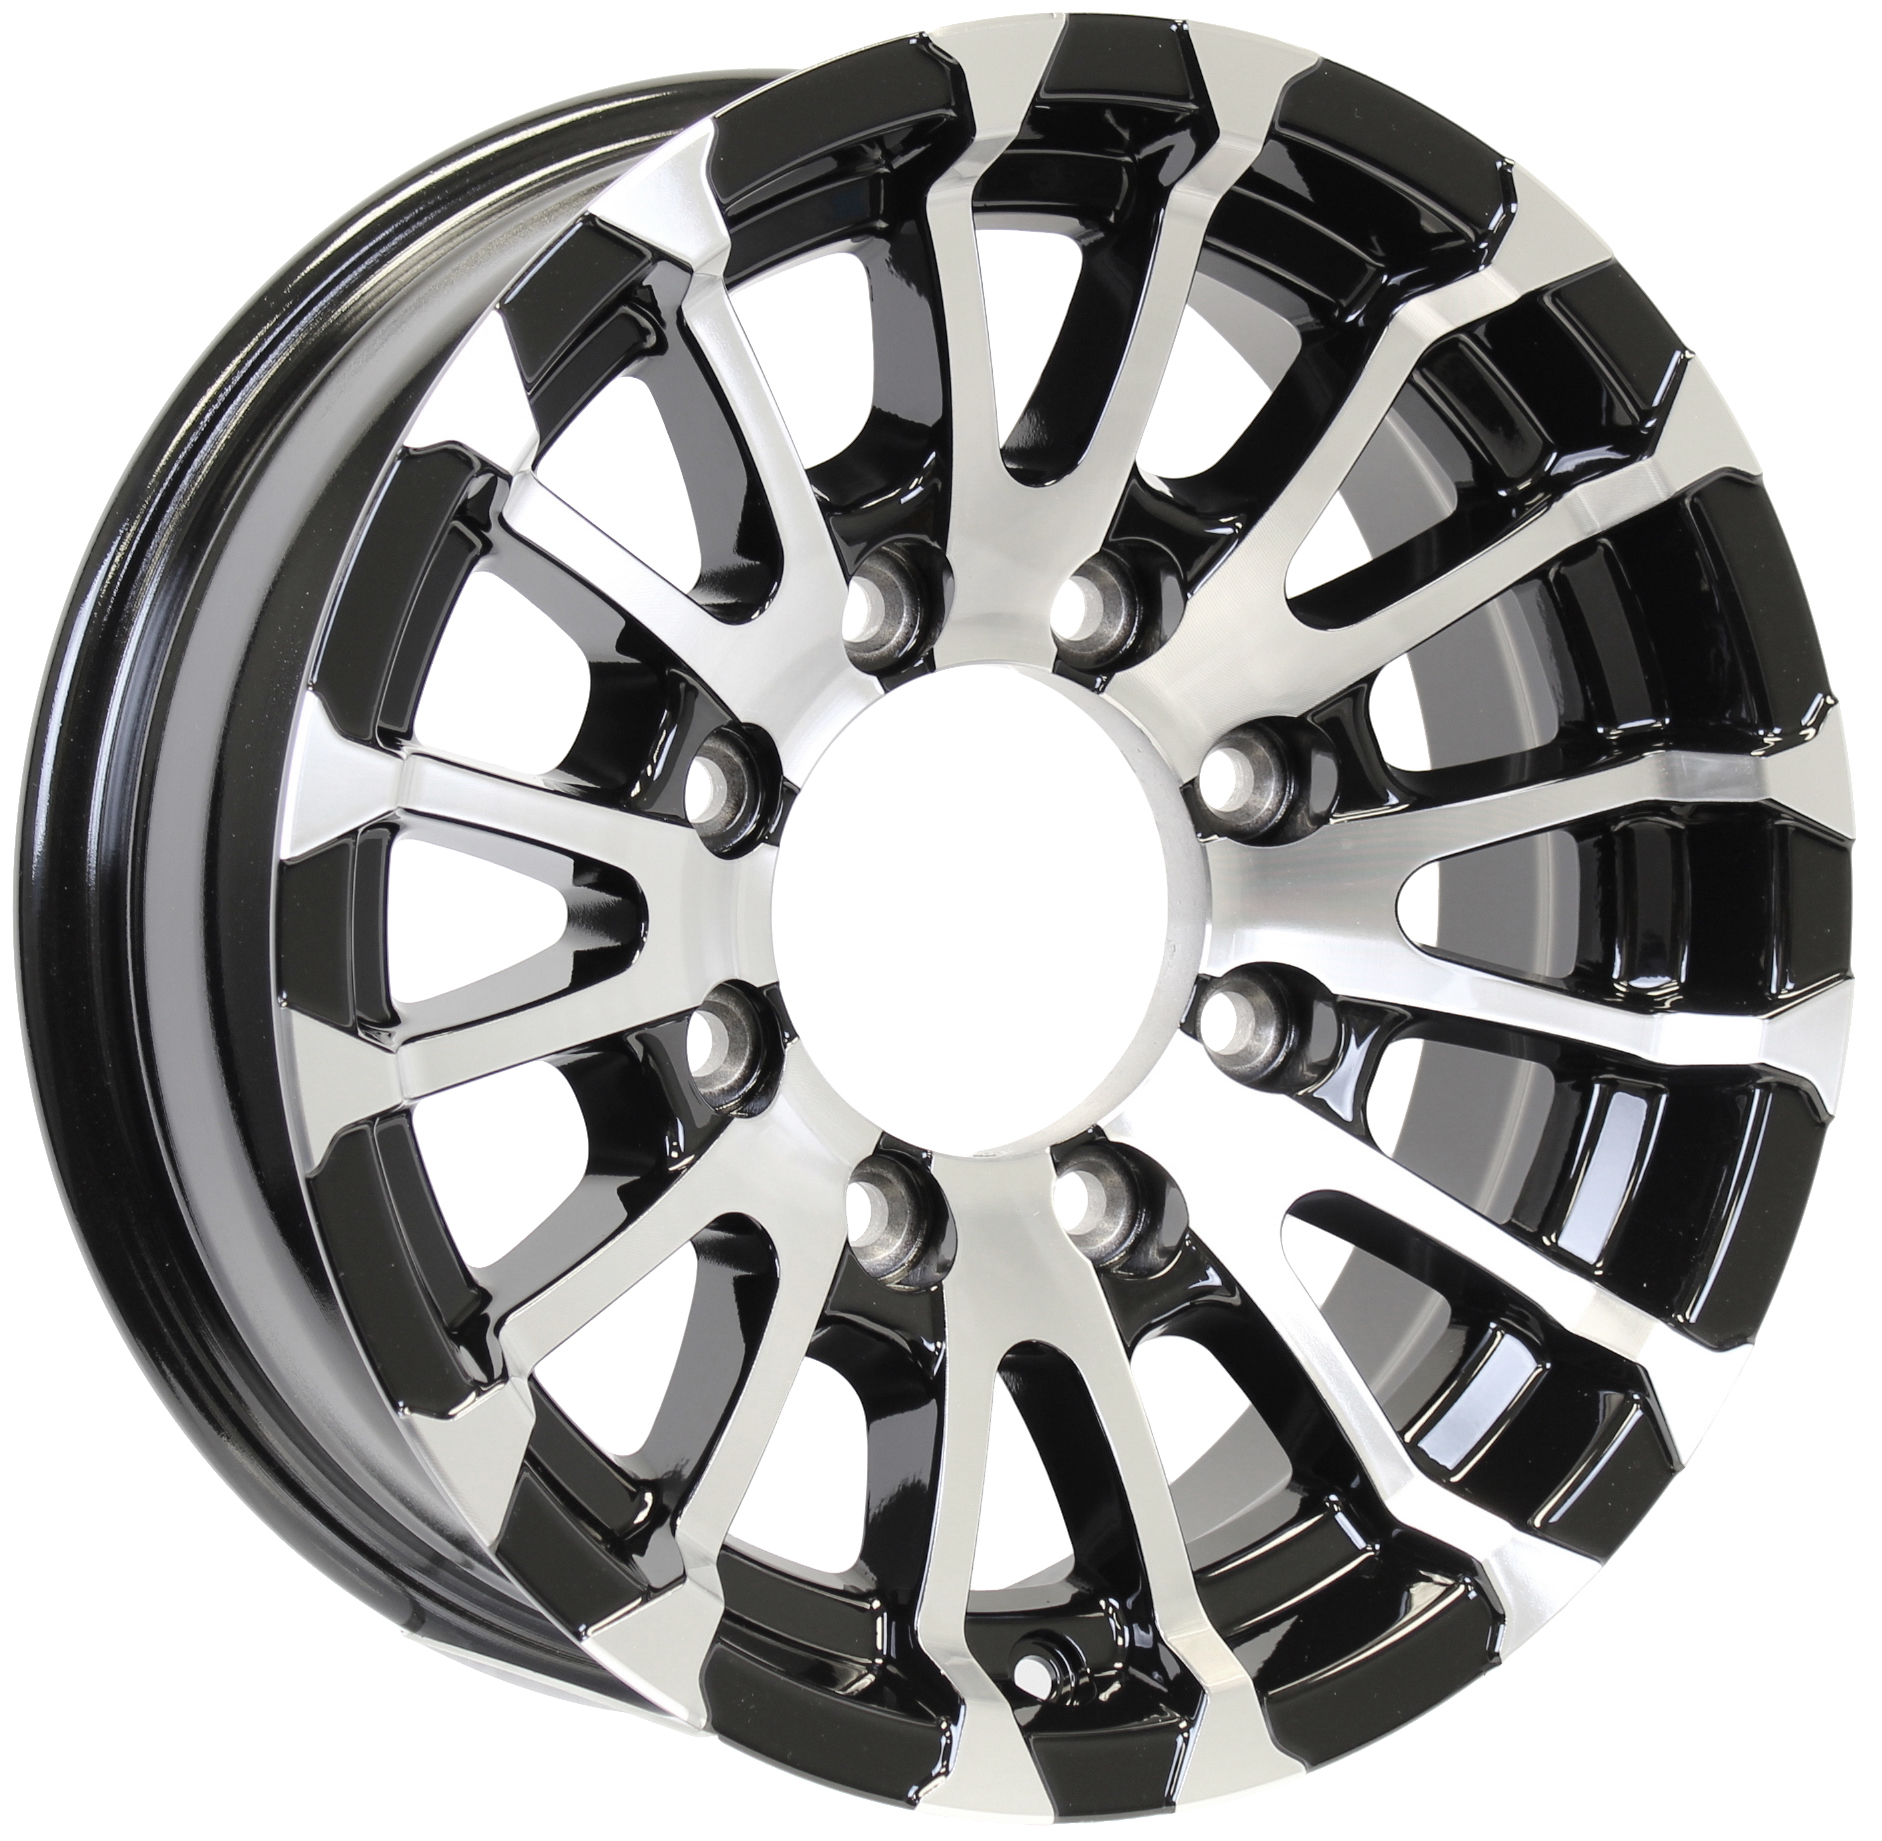 Avalanche 16x6; 8-Lug Black Aluminum Trailer Wheel Image